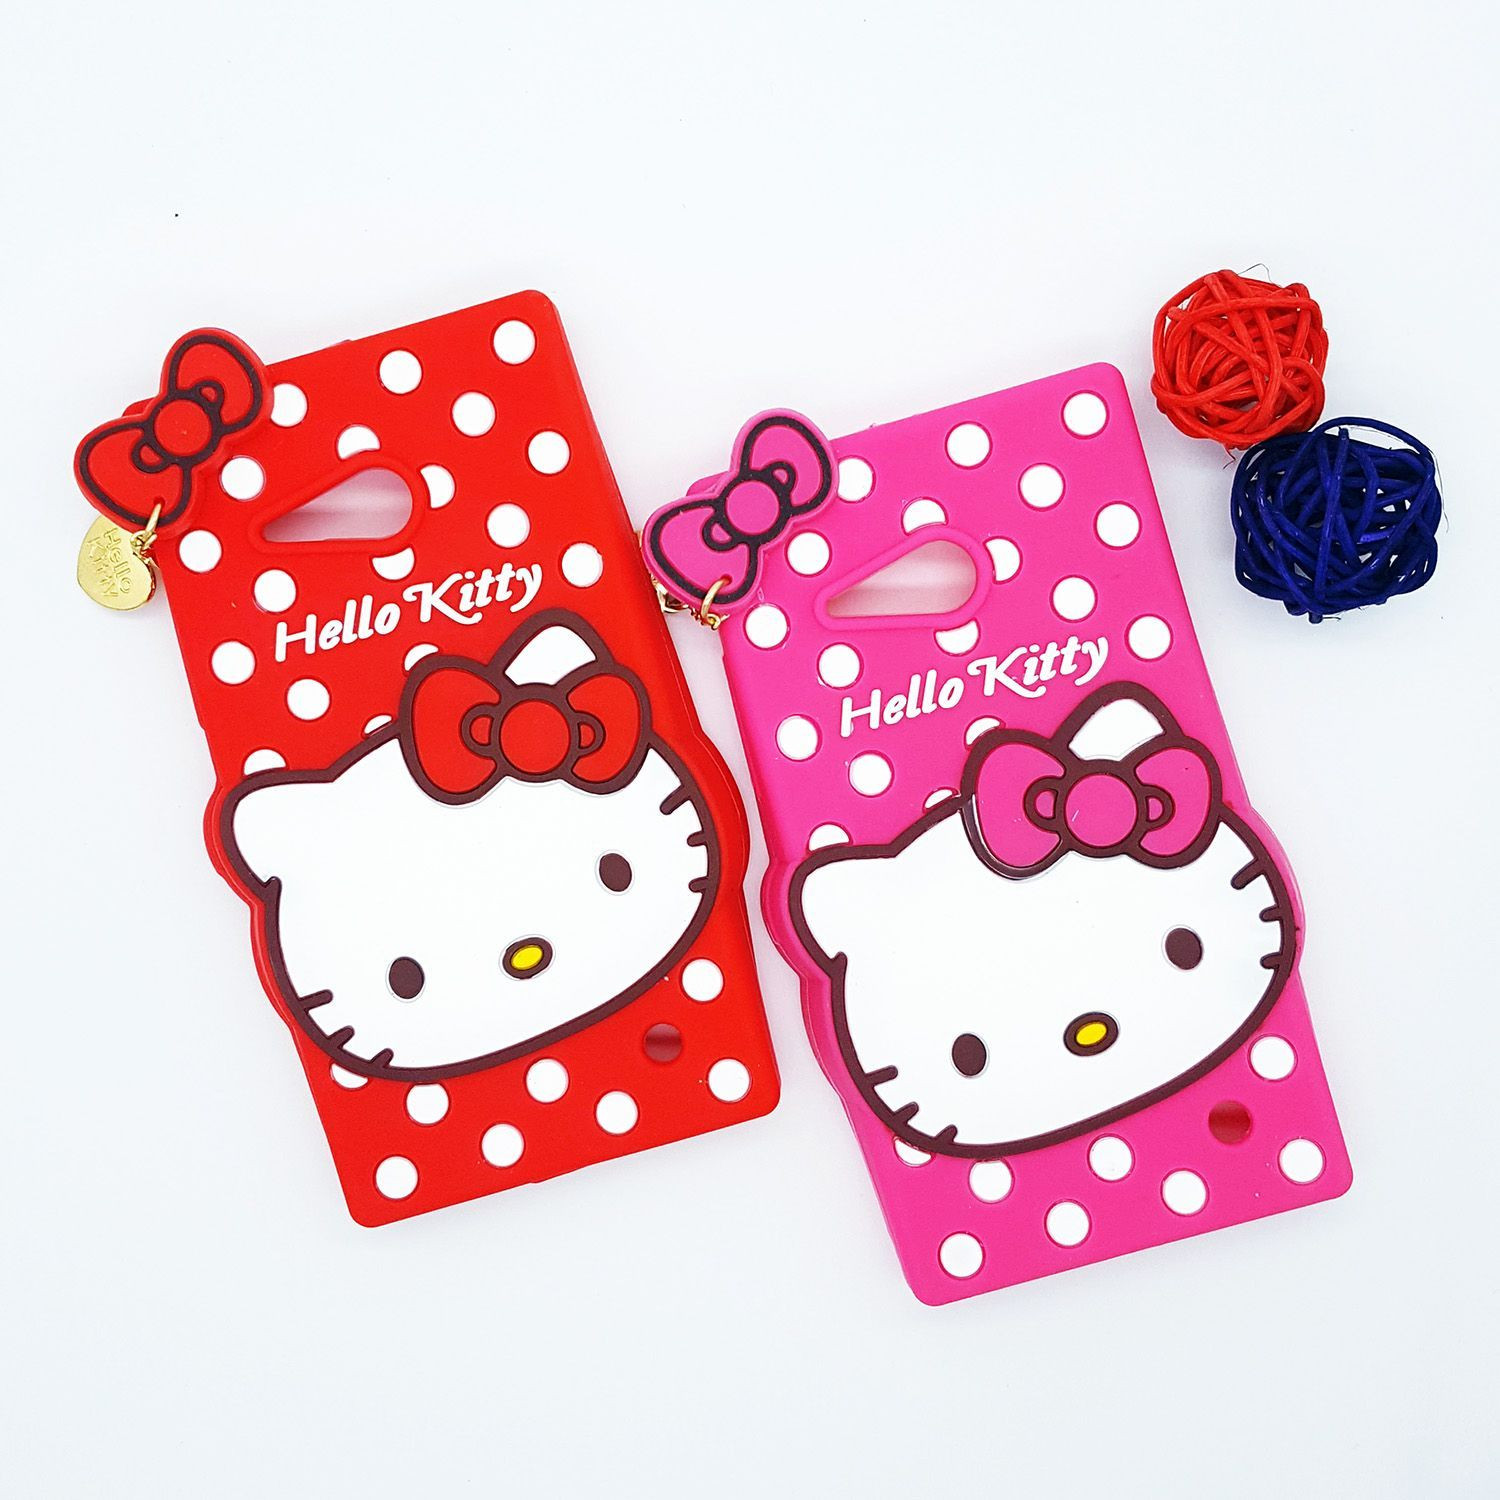 Hello Kitty Squishy Carrying Case : Cute Cases    4D Hello Kitty Design Ultra-Soft Gel Silicon Mobile Case + Kitty Pendant - Screen ...